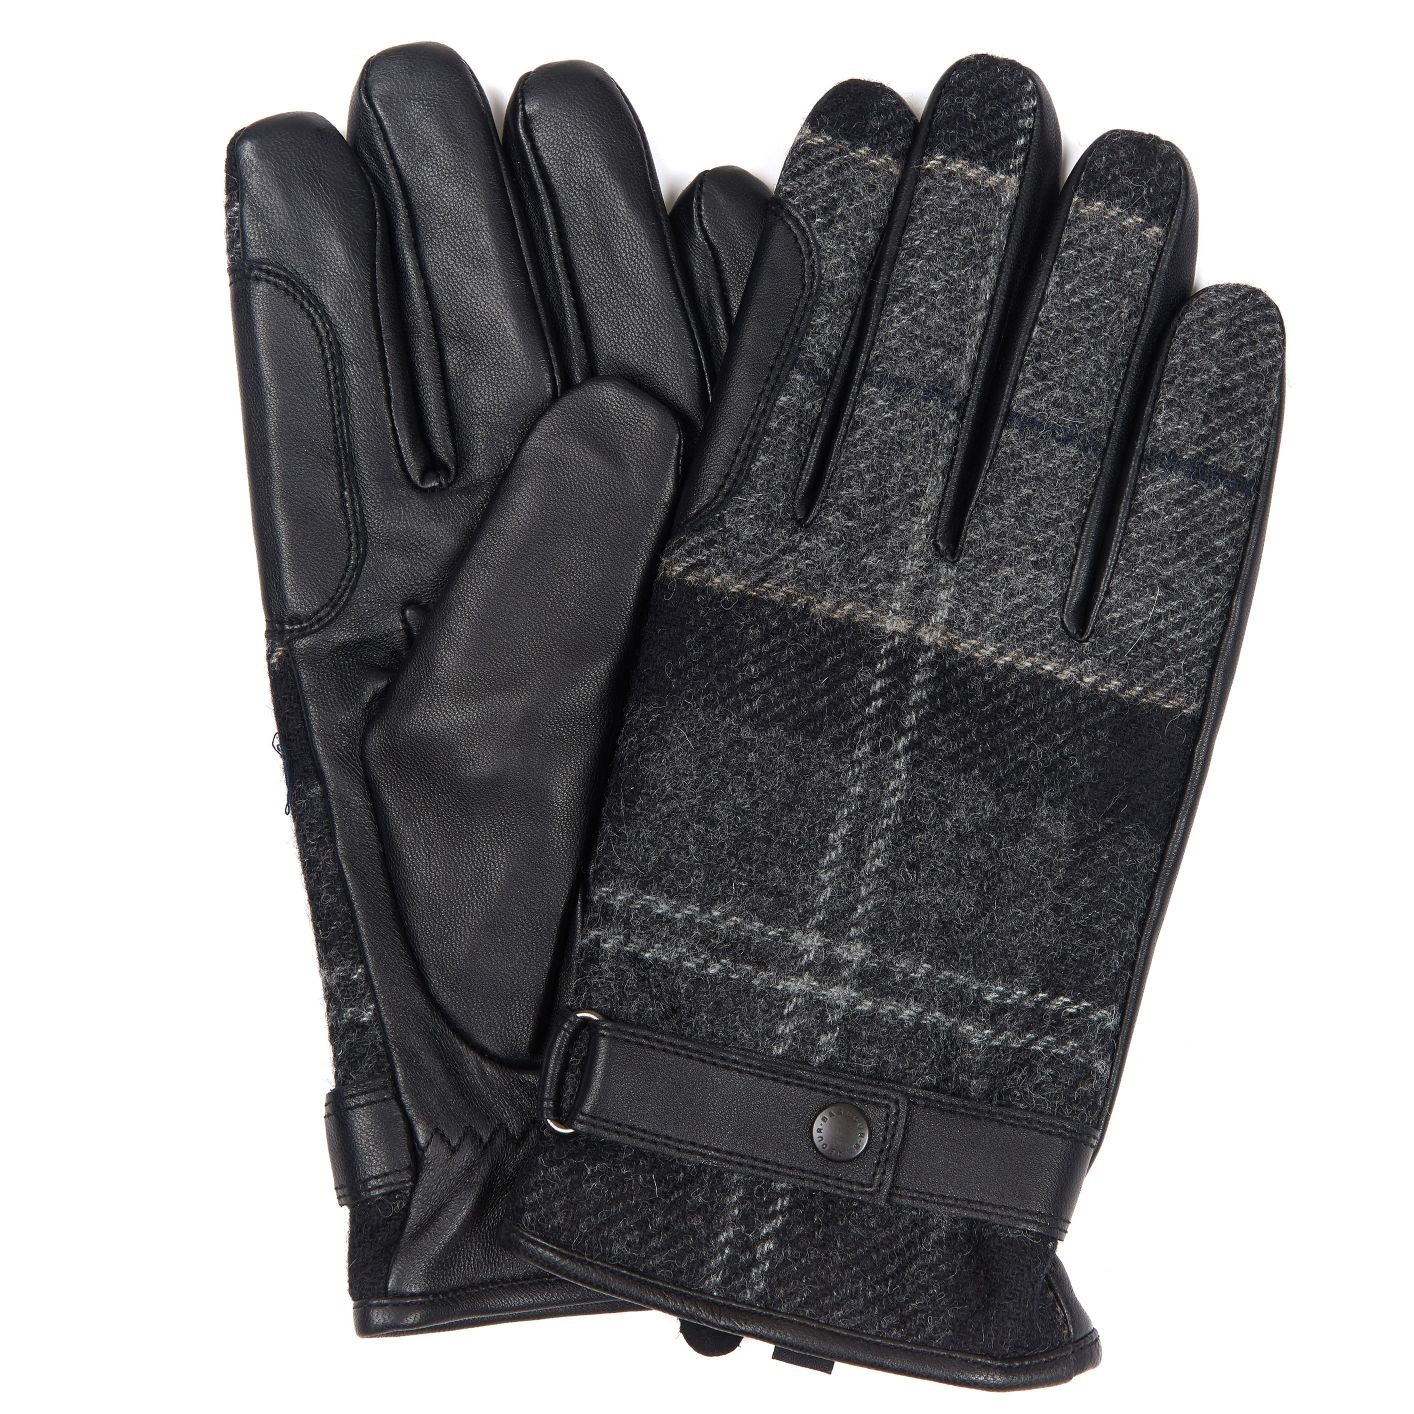 Newbrough black/grey Tartan handschoen heren